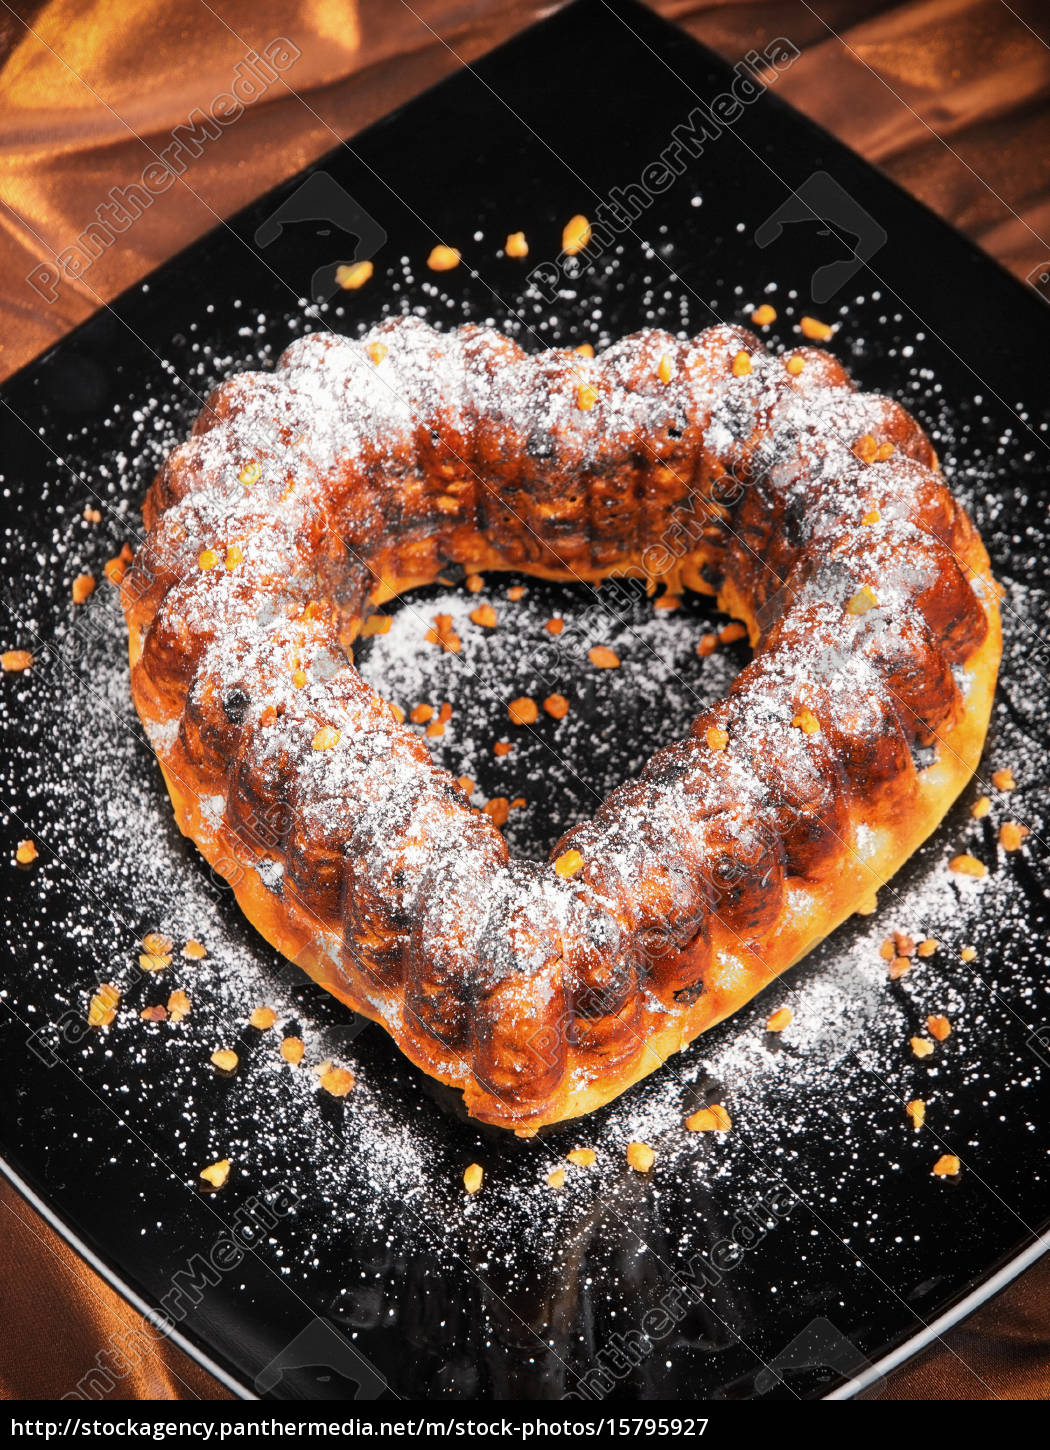 heartshaped, cake, heartshaped, cake - 15795927